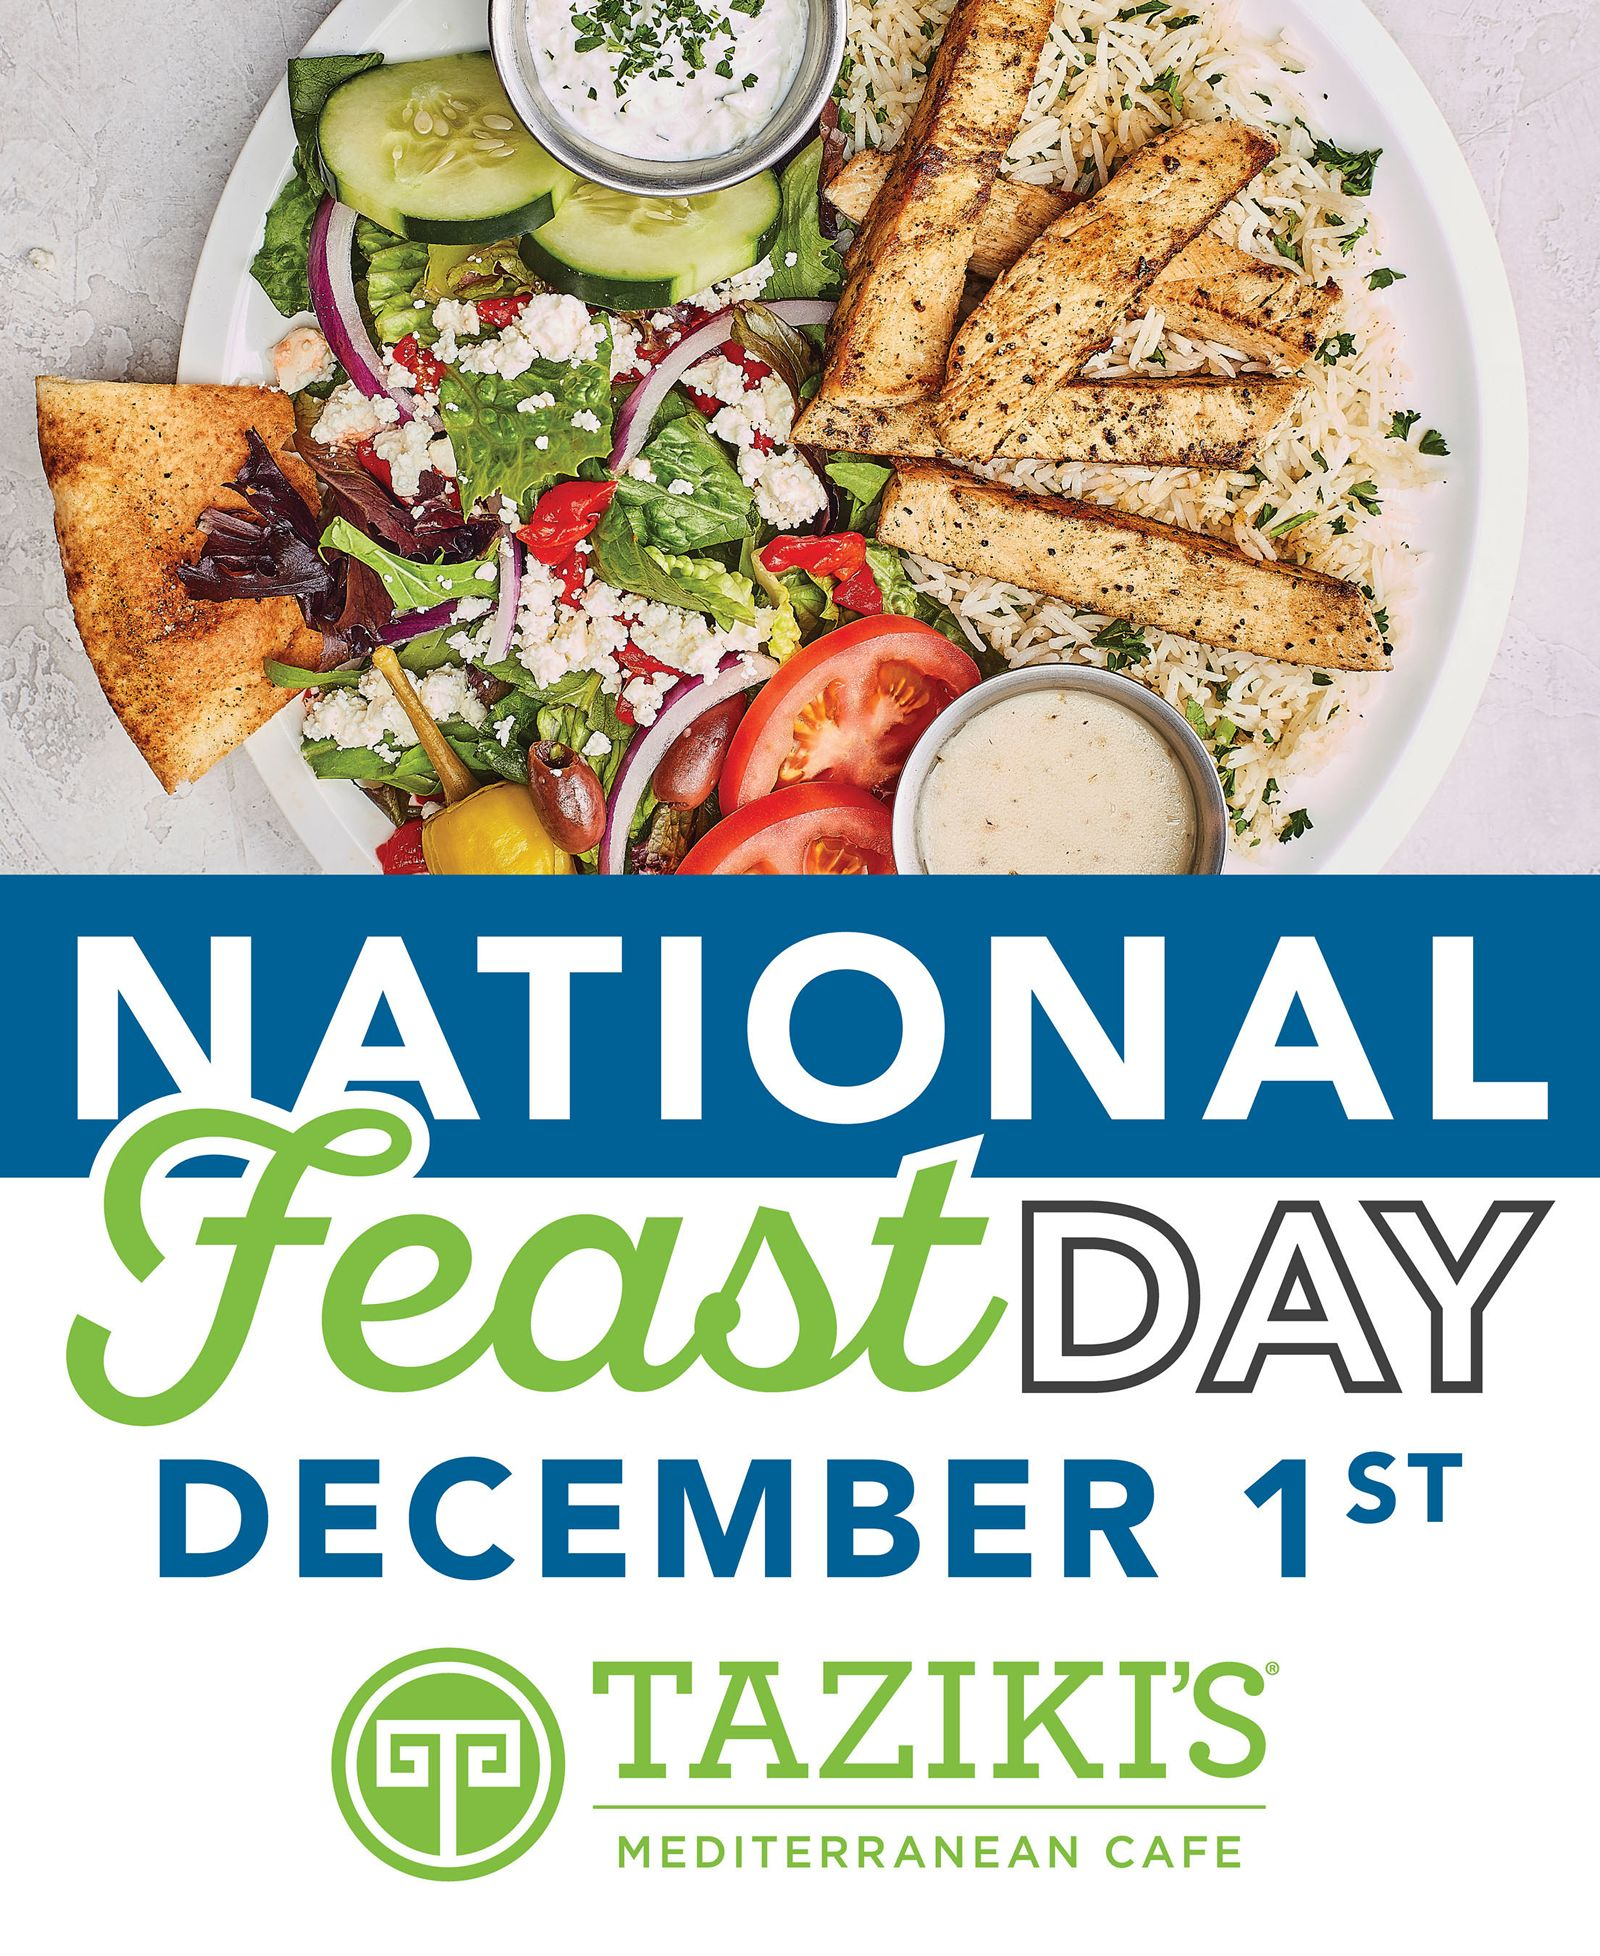 Taziki's Mediterranean Café Celebrates Annual National Feast Day with Giveaway